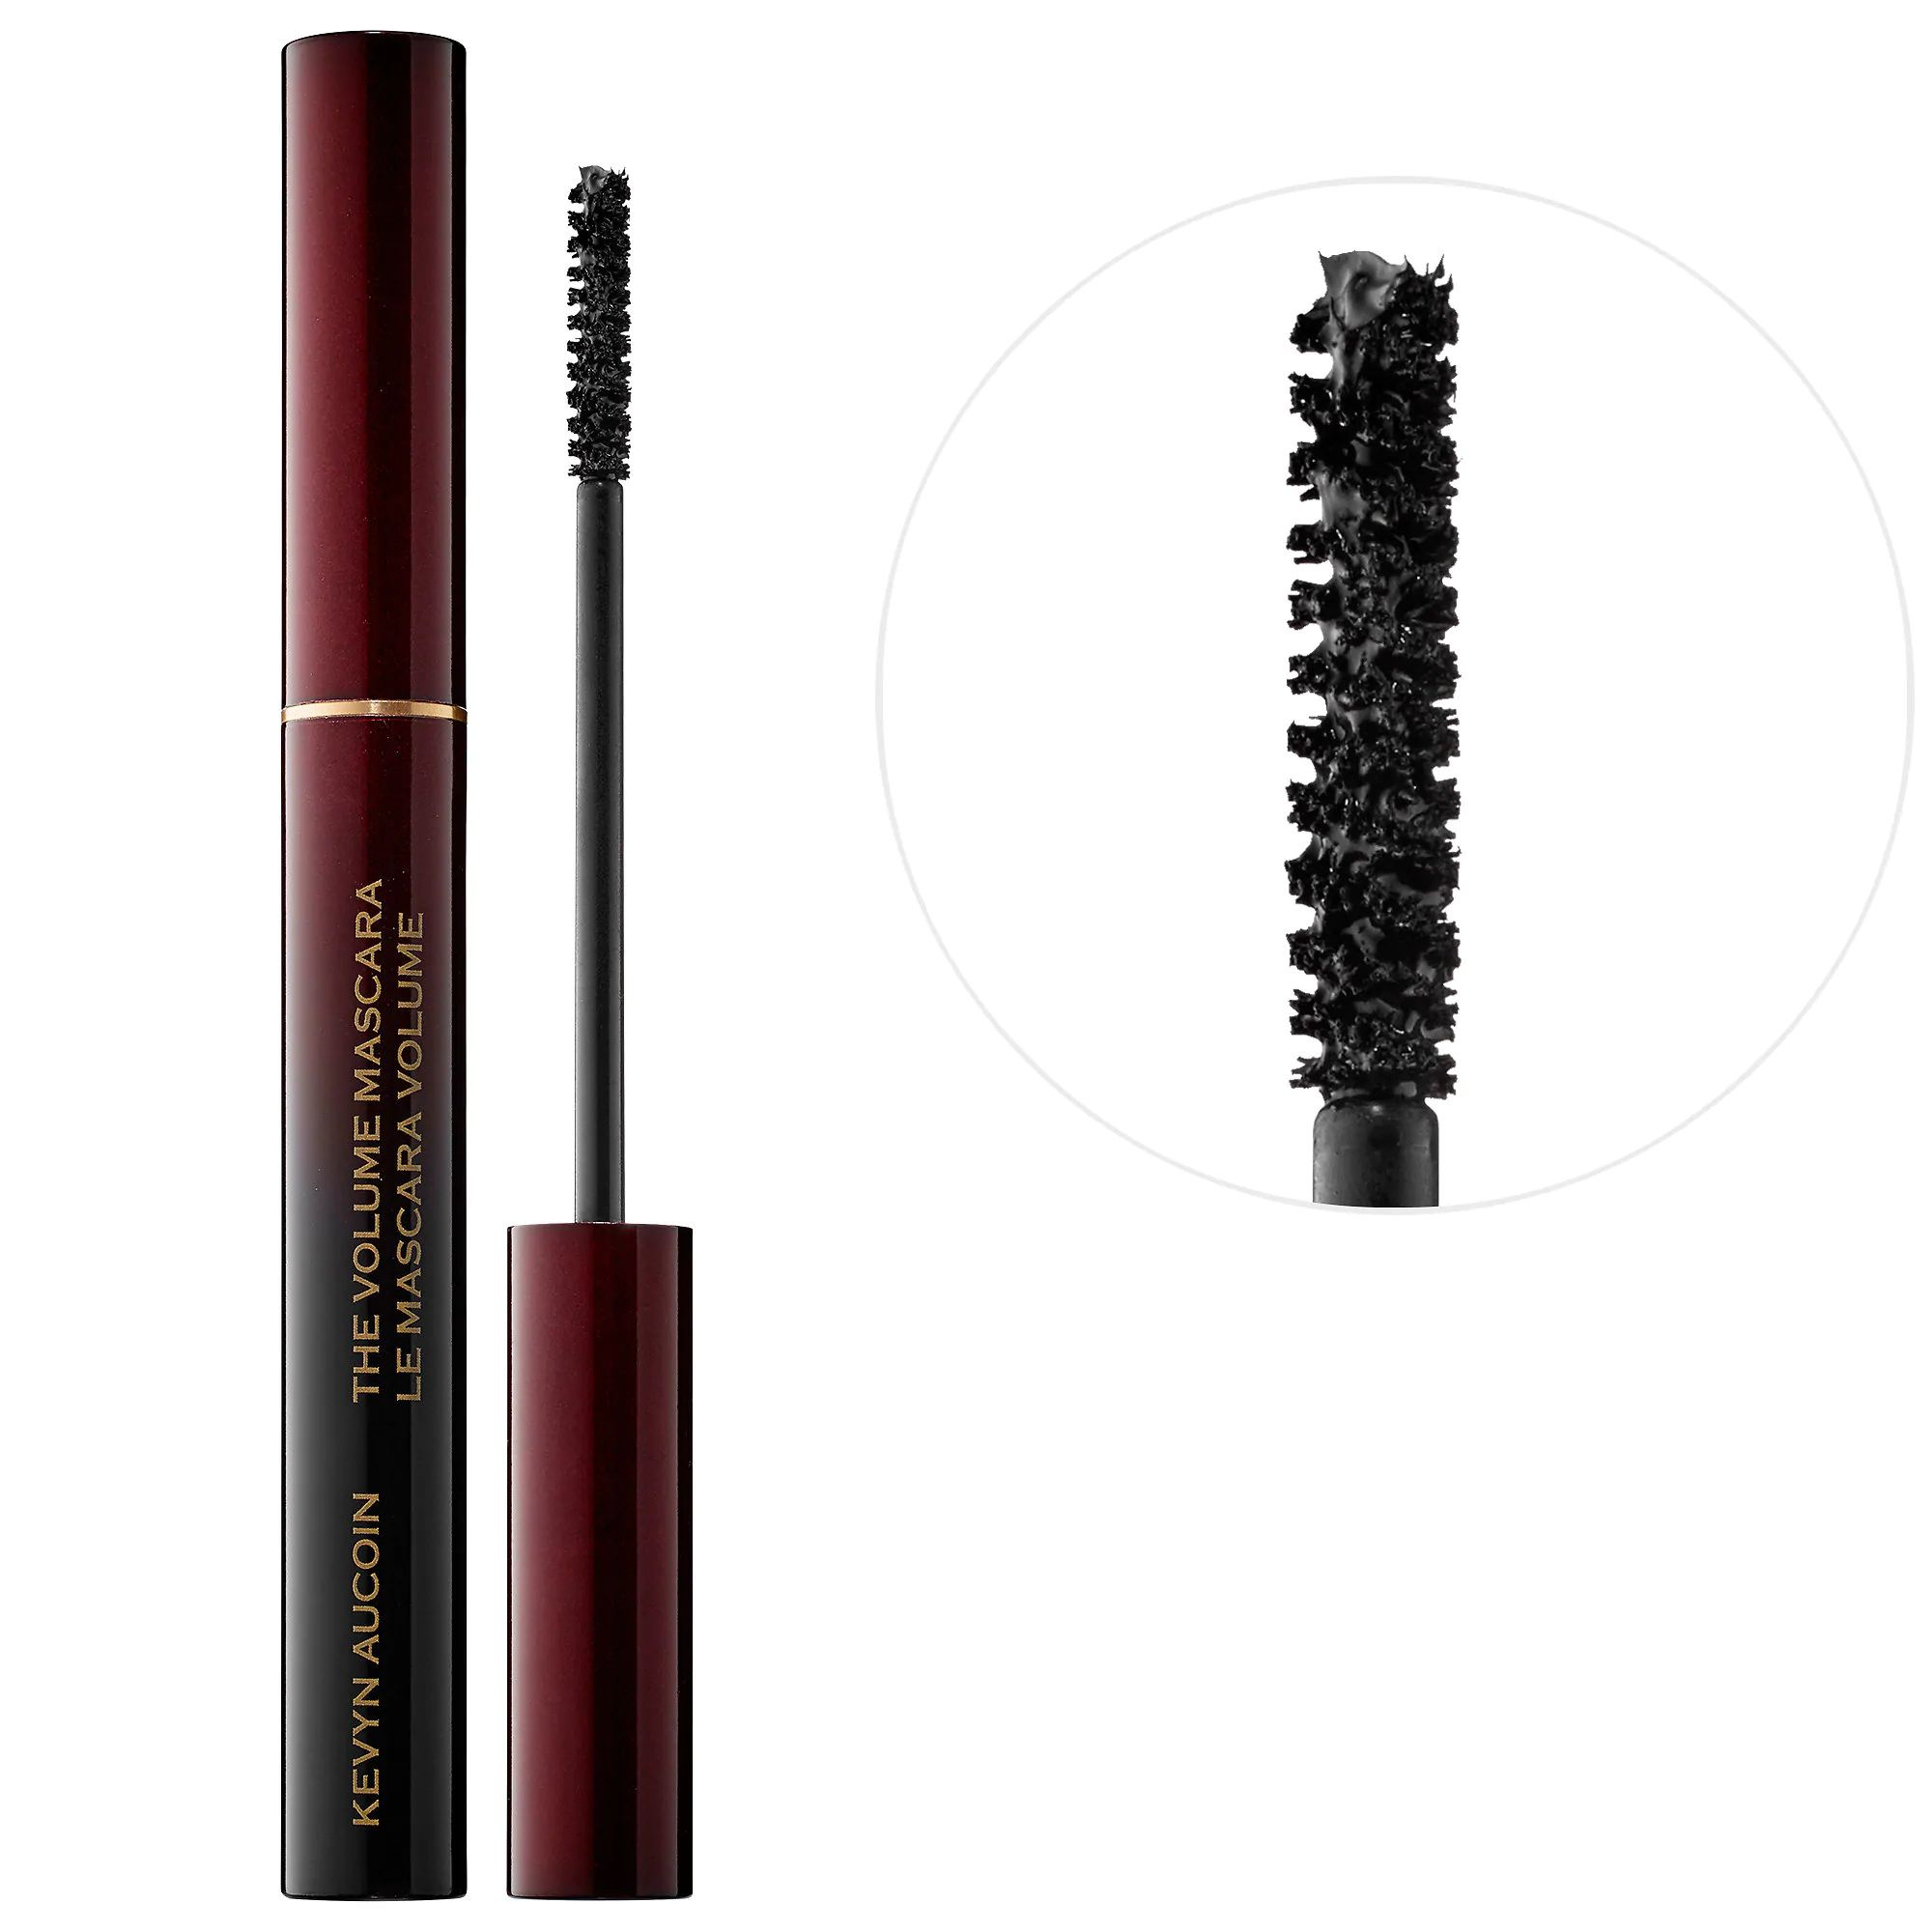 8 Tubing Mascaras That Work Just as Well as Lash Extensions